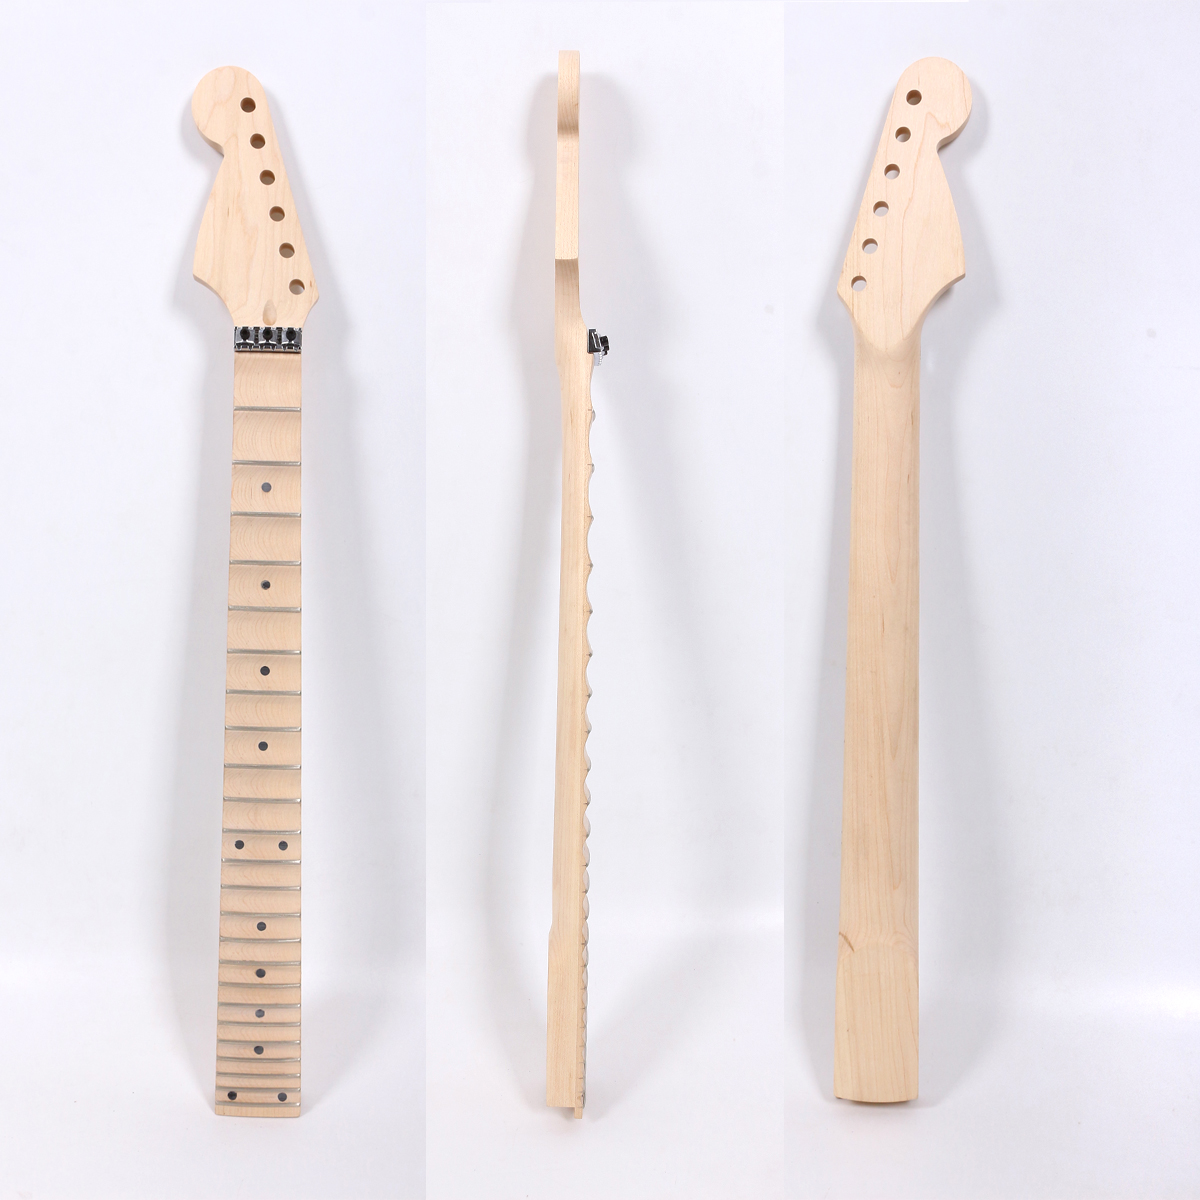 Diy St Style Electric guitar Neck locking Nut Canada Maple 24Fret 25.5inch Guitar Project UnfinishedDiy St Style Electric guitar Neck locking Nut Canada Maple 24Fret 25.5inch Guitar Project Unfinished